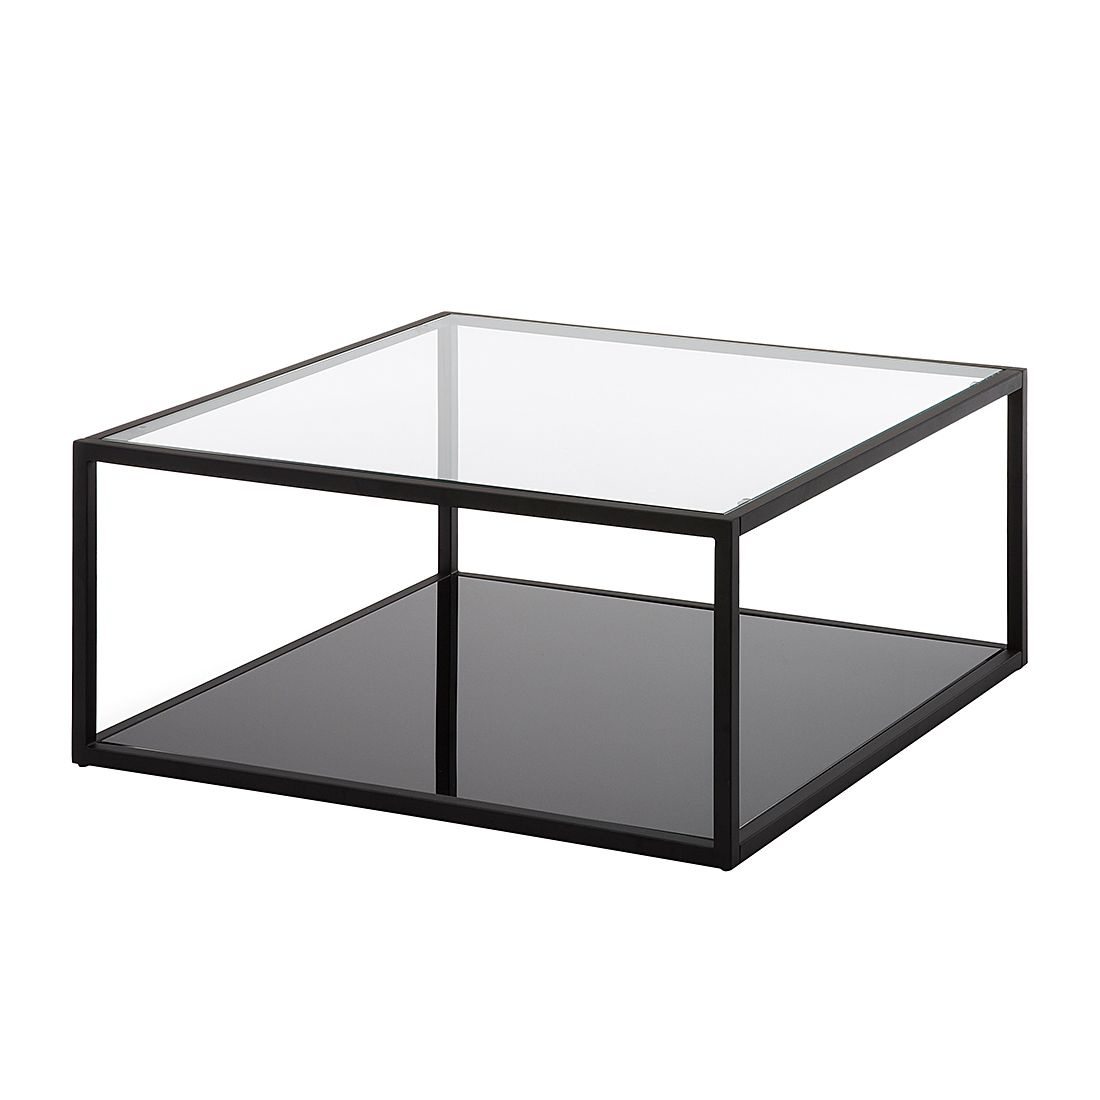 Table basse Brora I - Noir, Fredriks